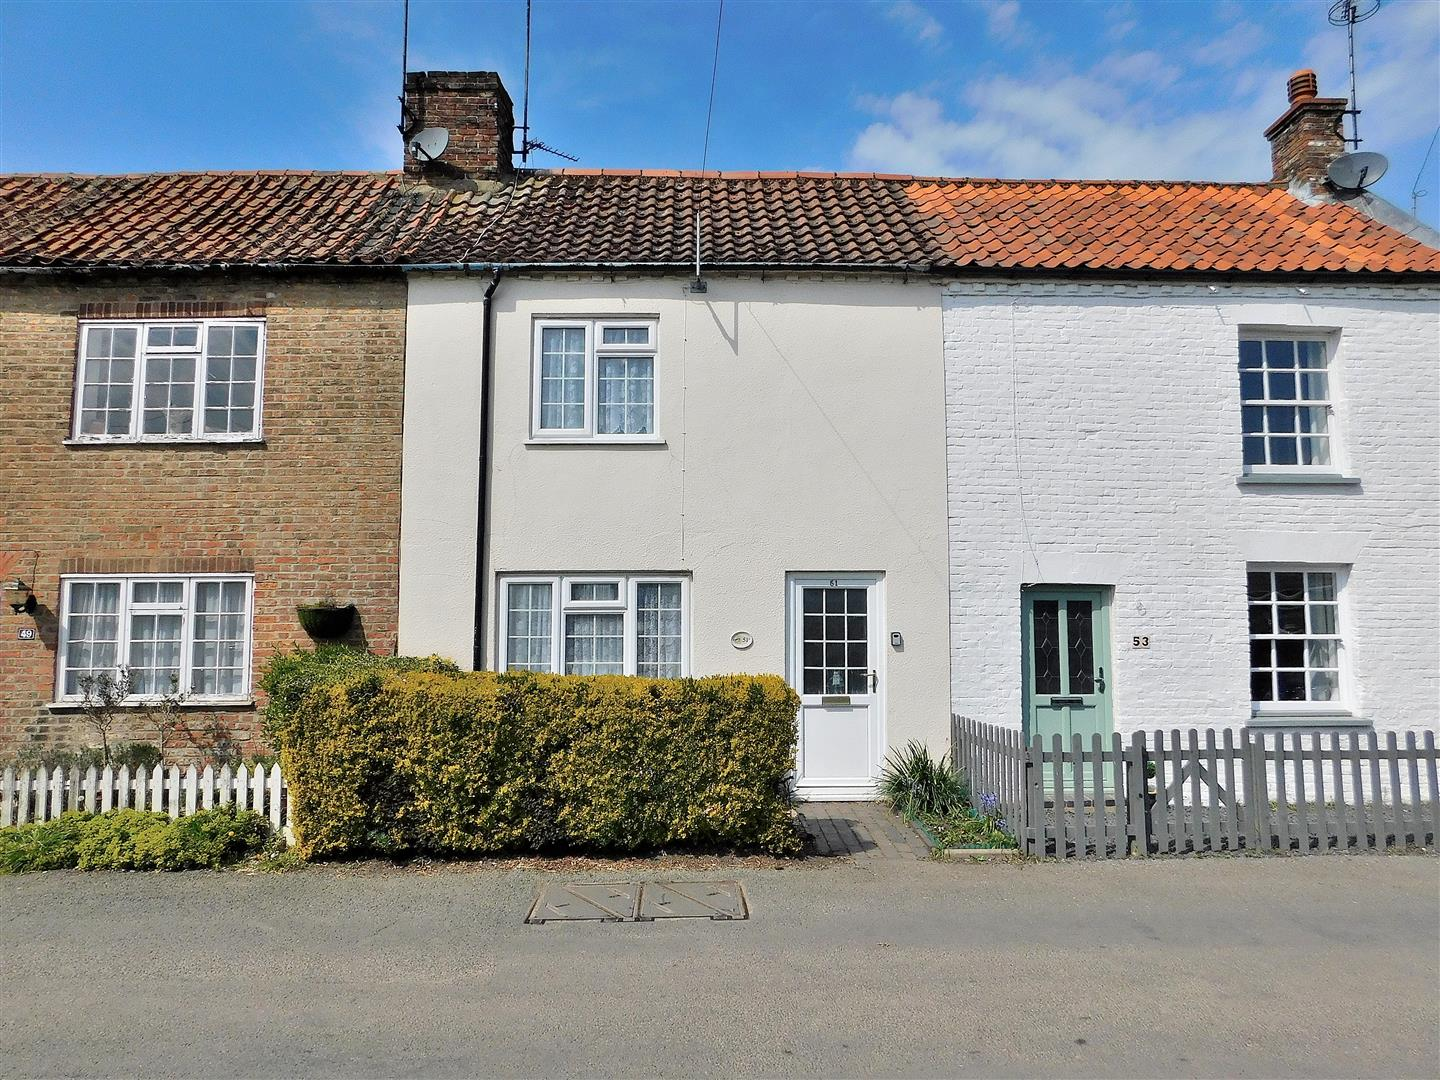 2 bed cottage for sale in Marshland Street, King's Lynn, PE34